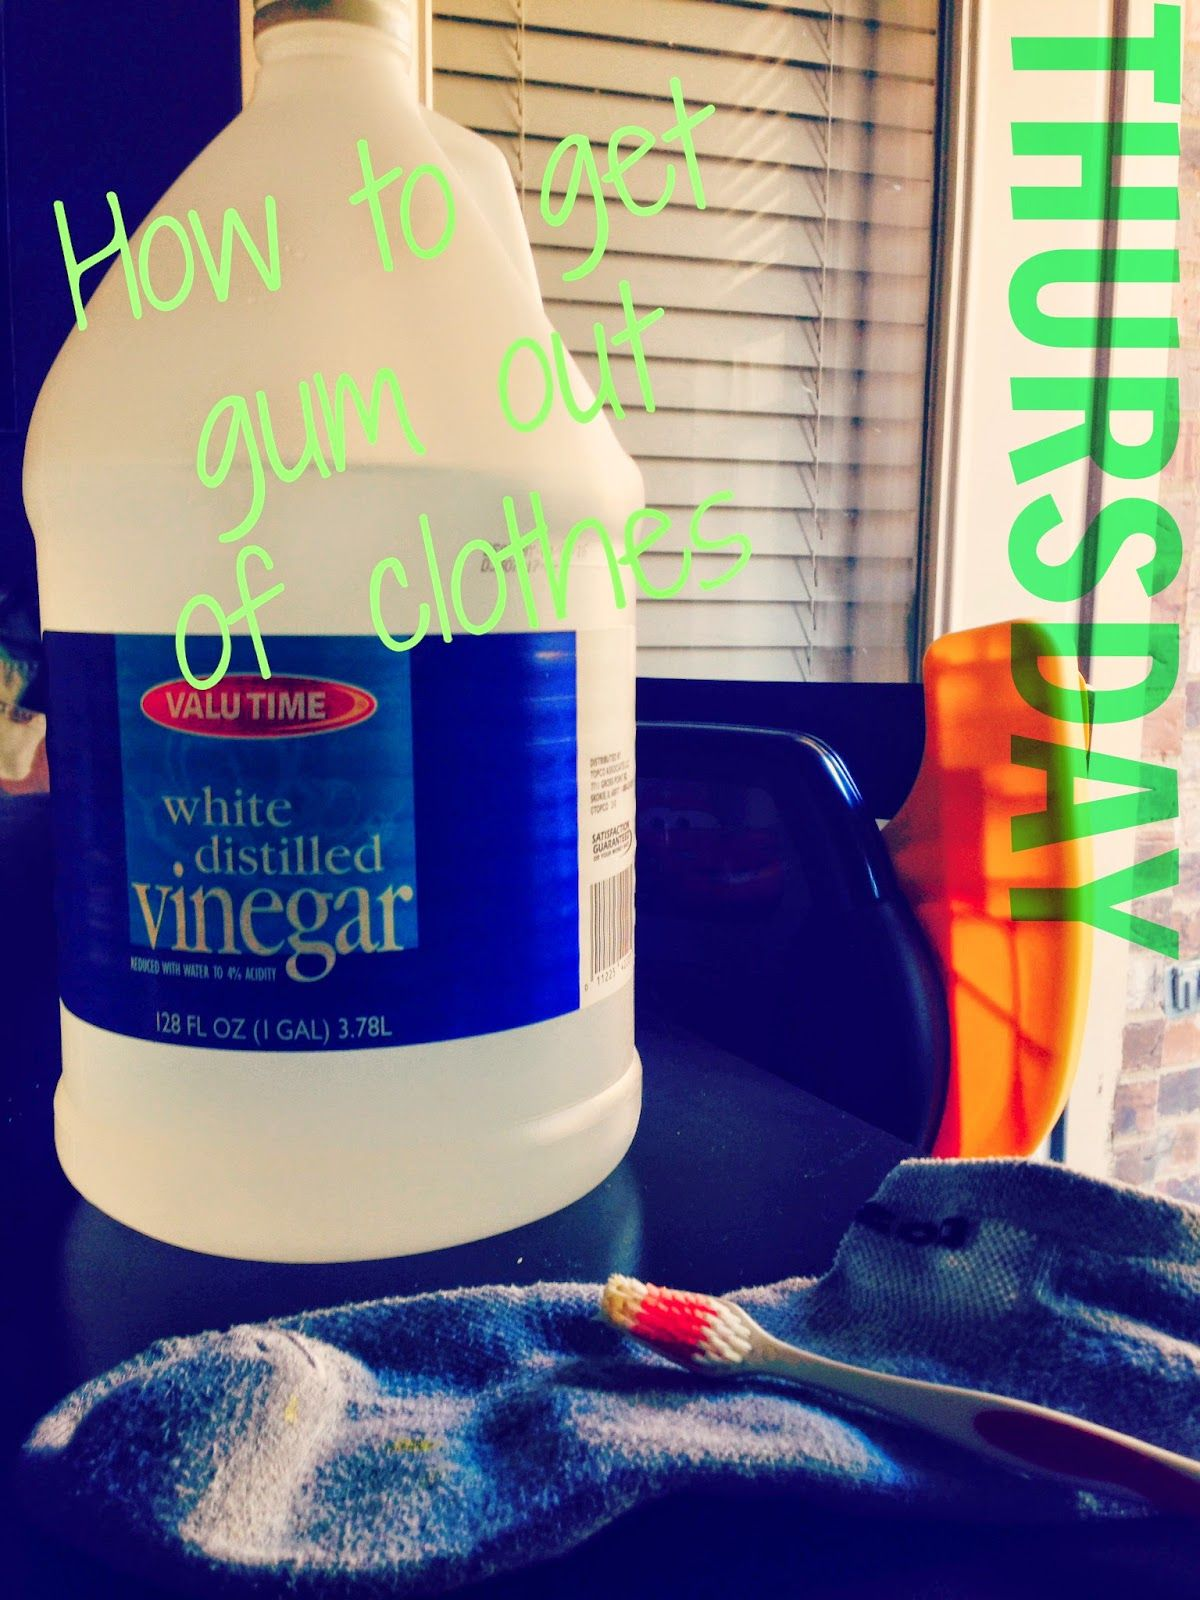 How to get gum out of clothes simple solution for a